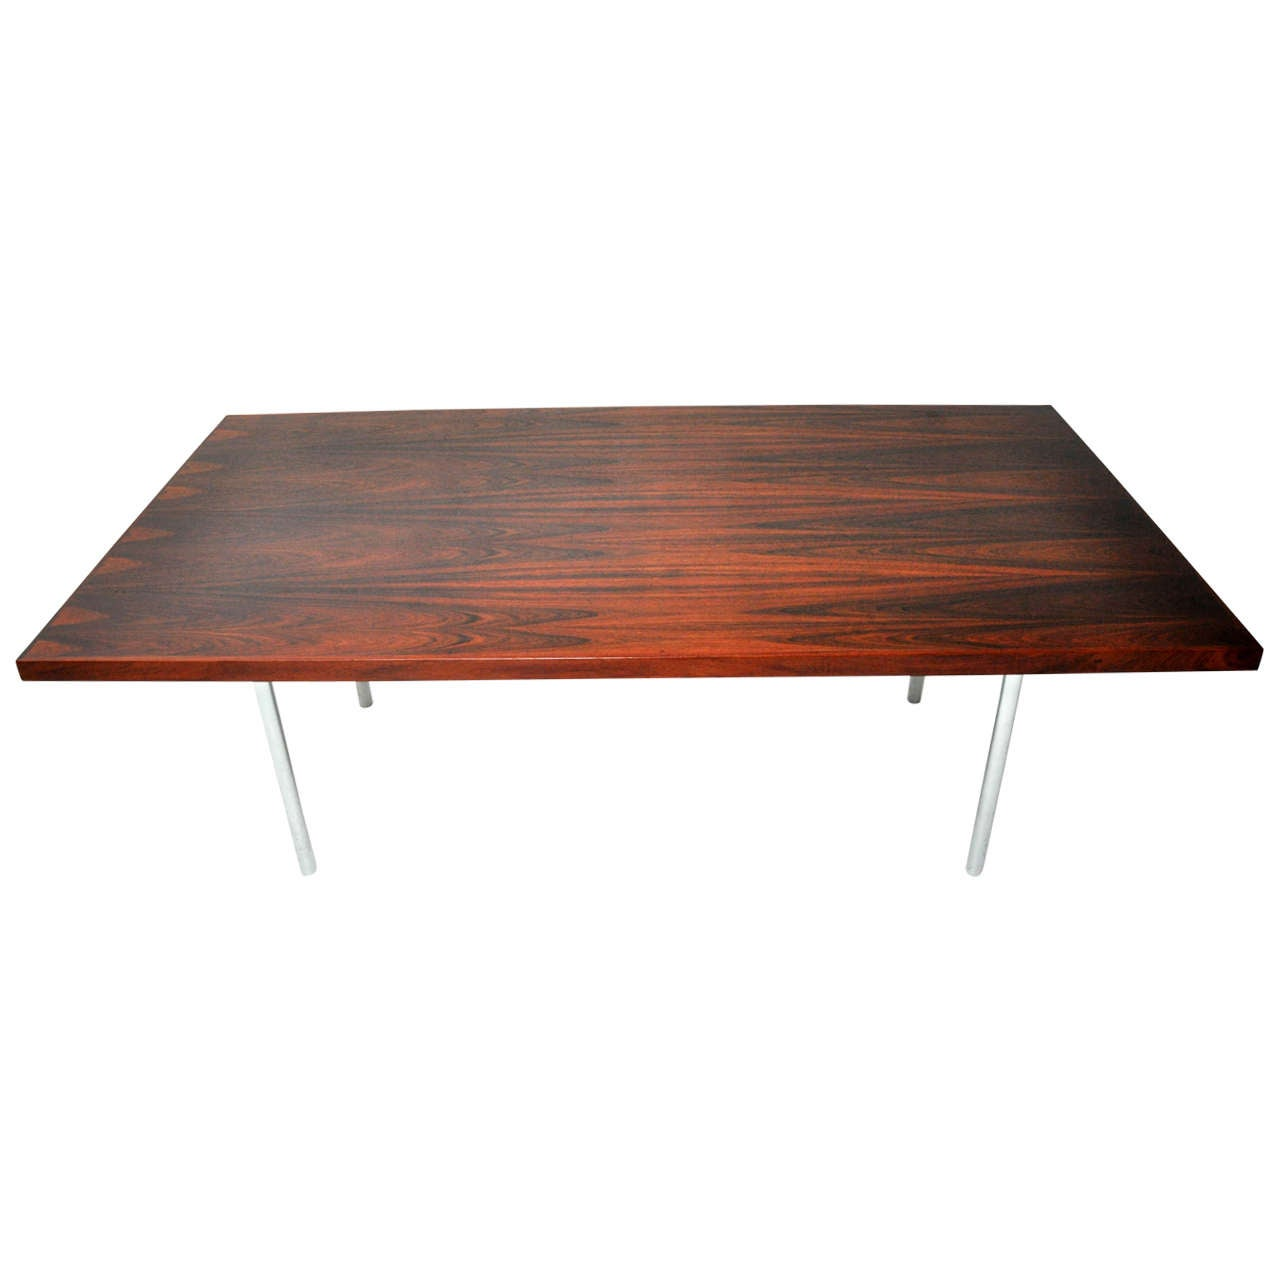 Art Van Coffee Table Sets: Rosewood Dining Table After Mies Van Der Rohe For Sale At